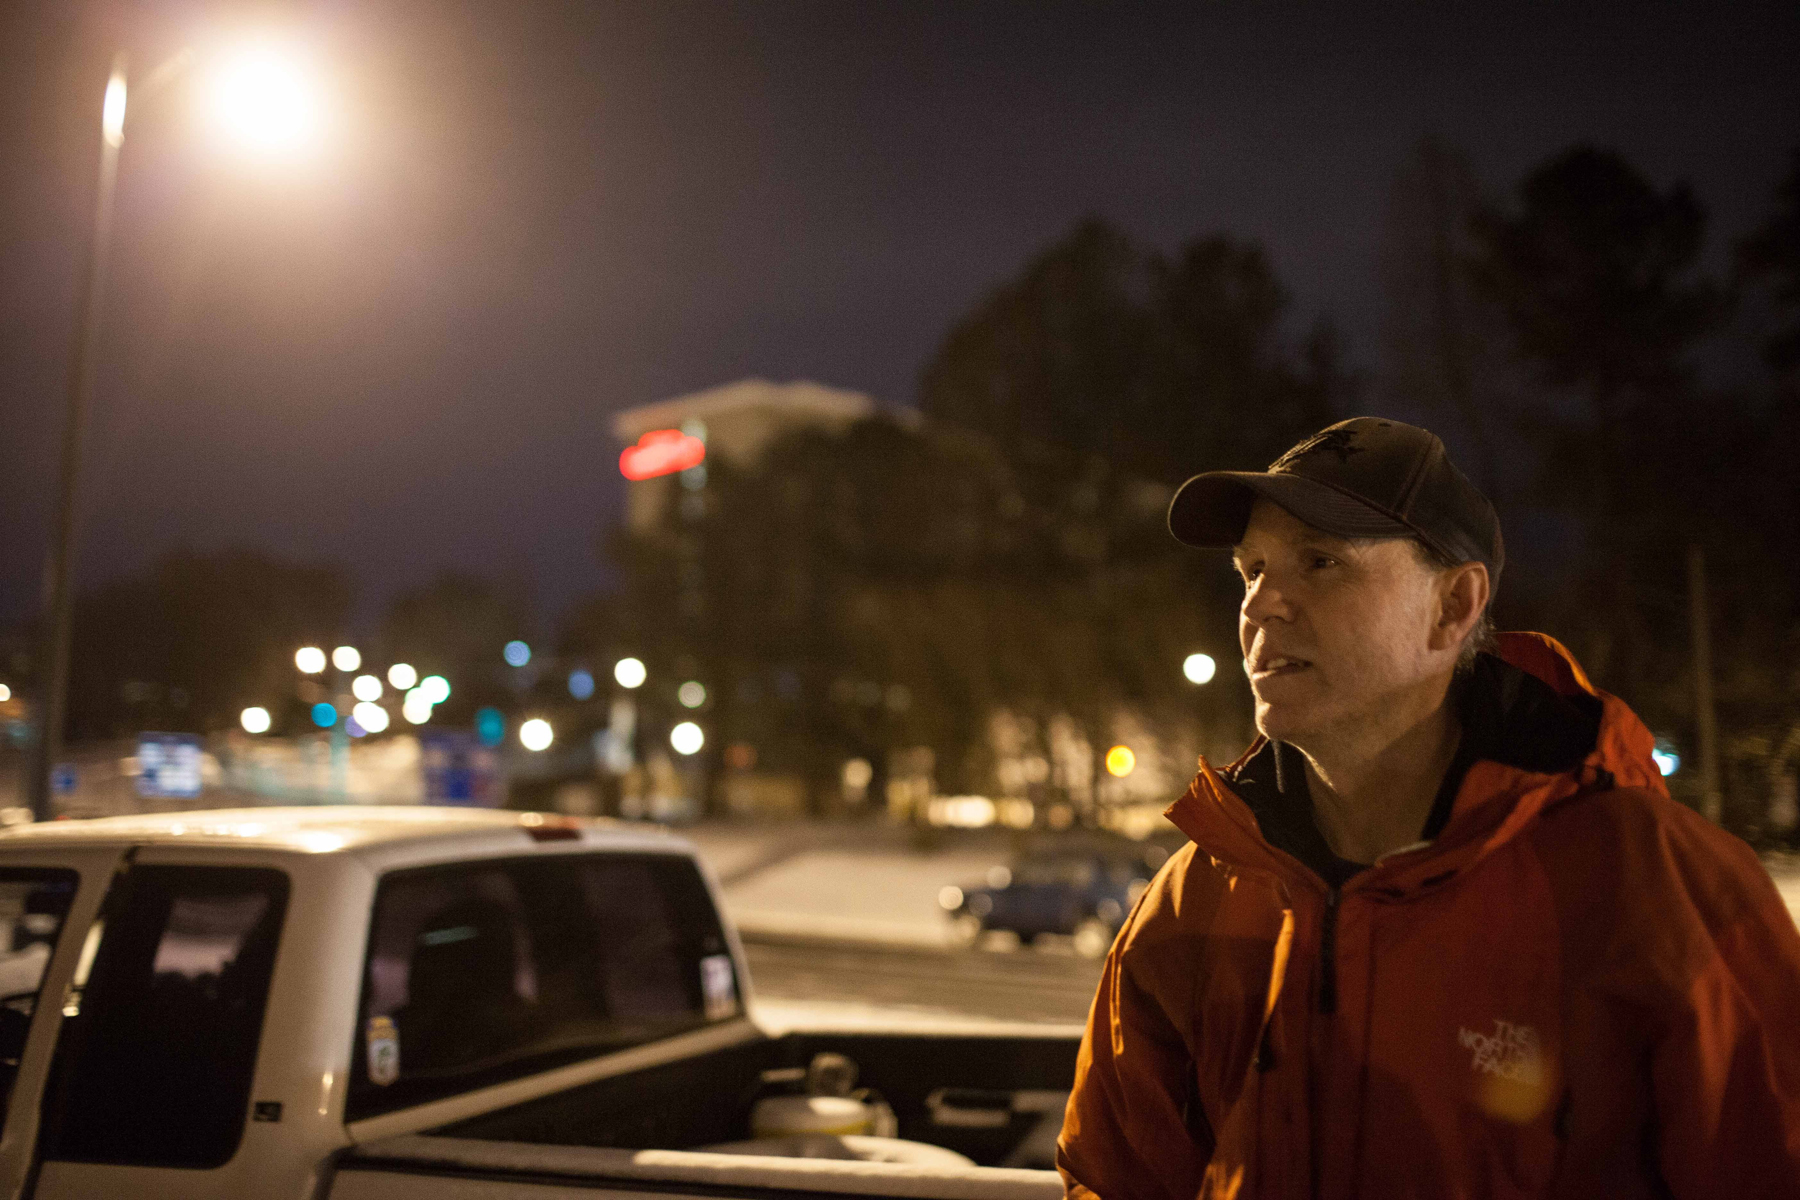 Jeff Brown stands outside of his truck that he slept in Tuesday night after being stranded on Interstate 285, early Wednesday, Jan. 29, 2014, in Dunwoody, Ga.